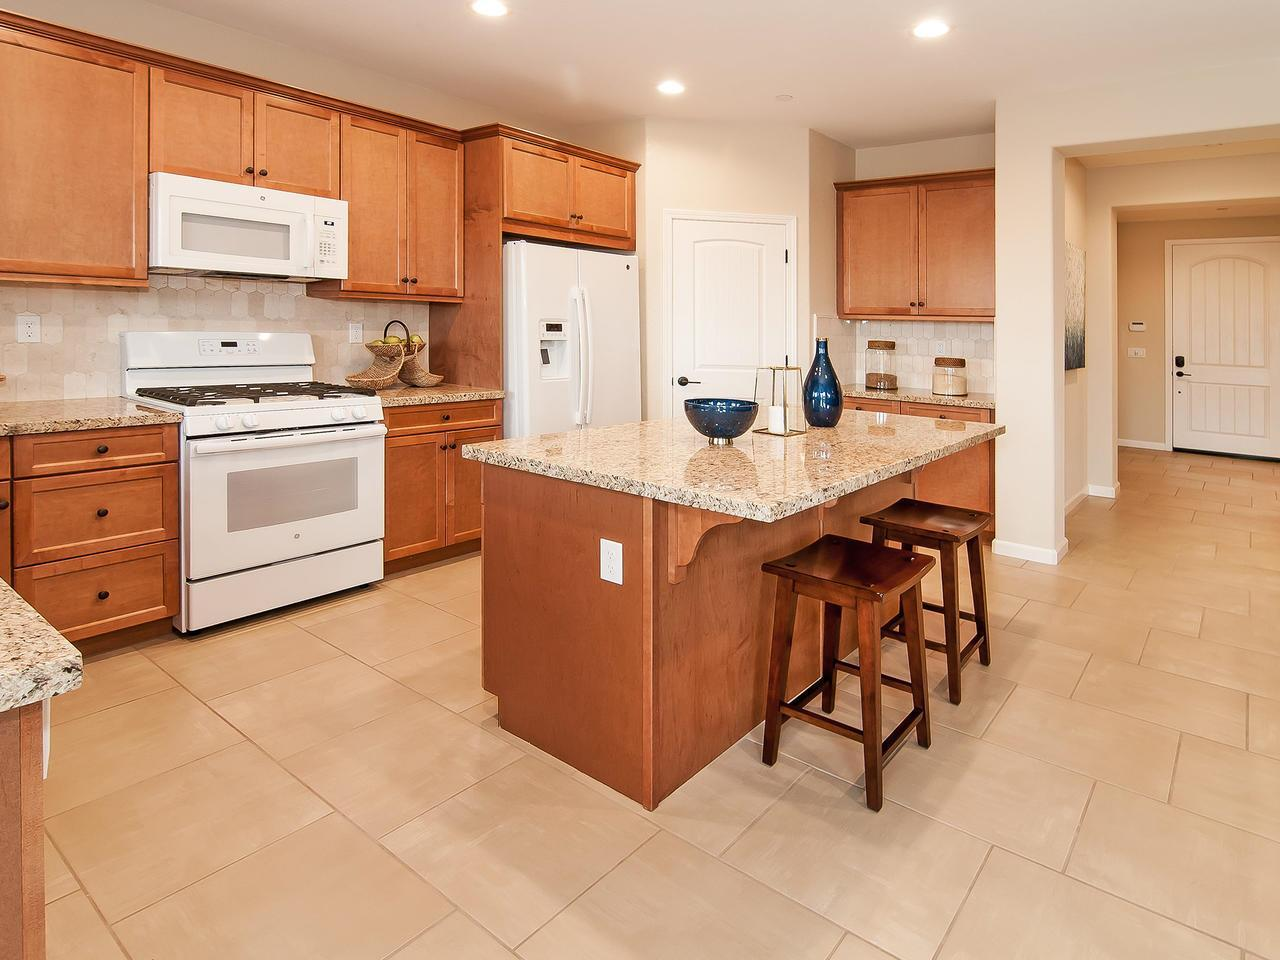 Kitchen featured in the Residence 2041 By Legacy Homes in Merced, CA